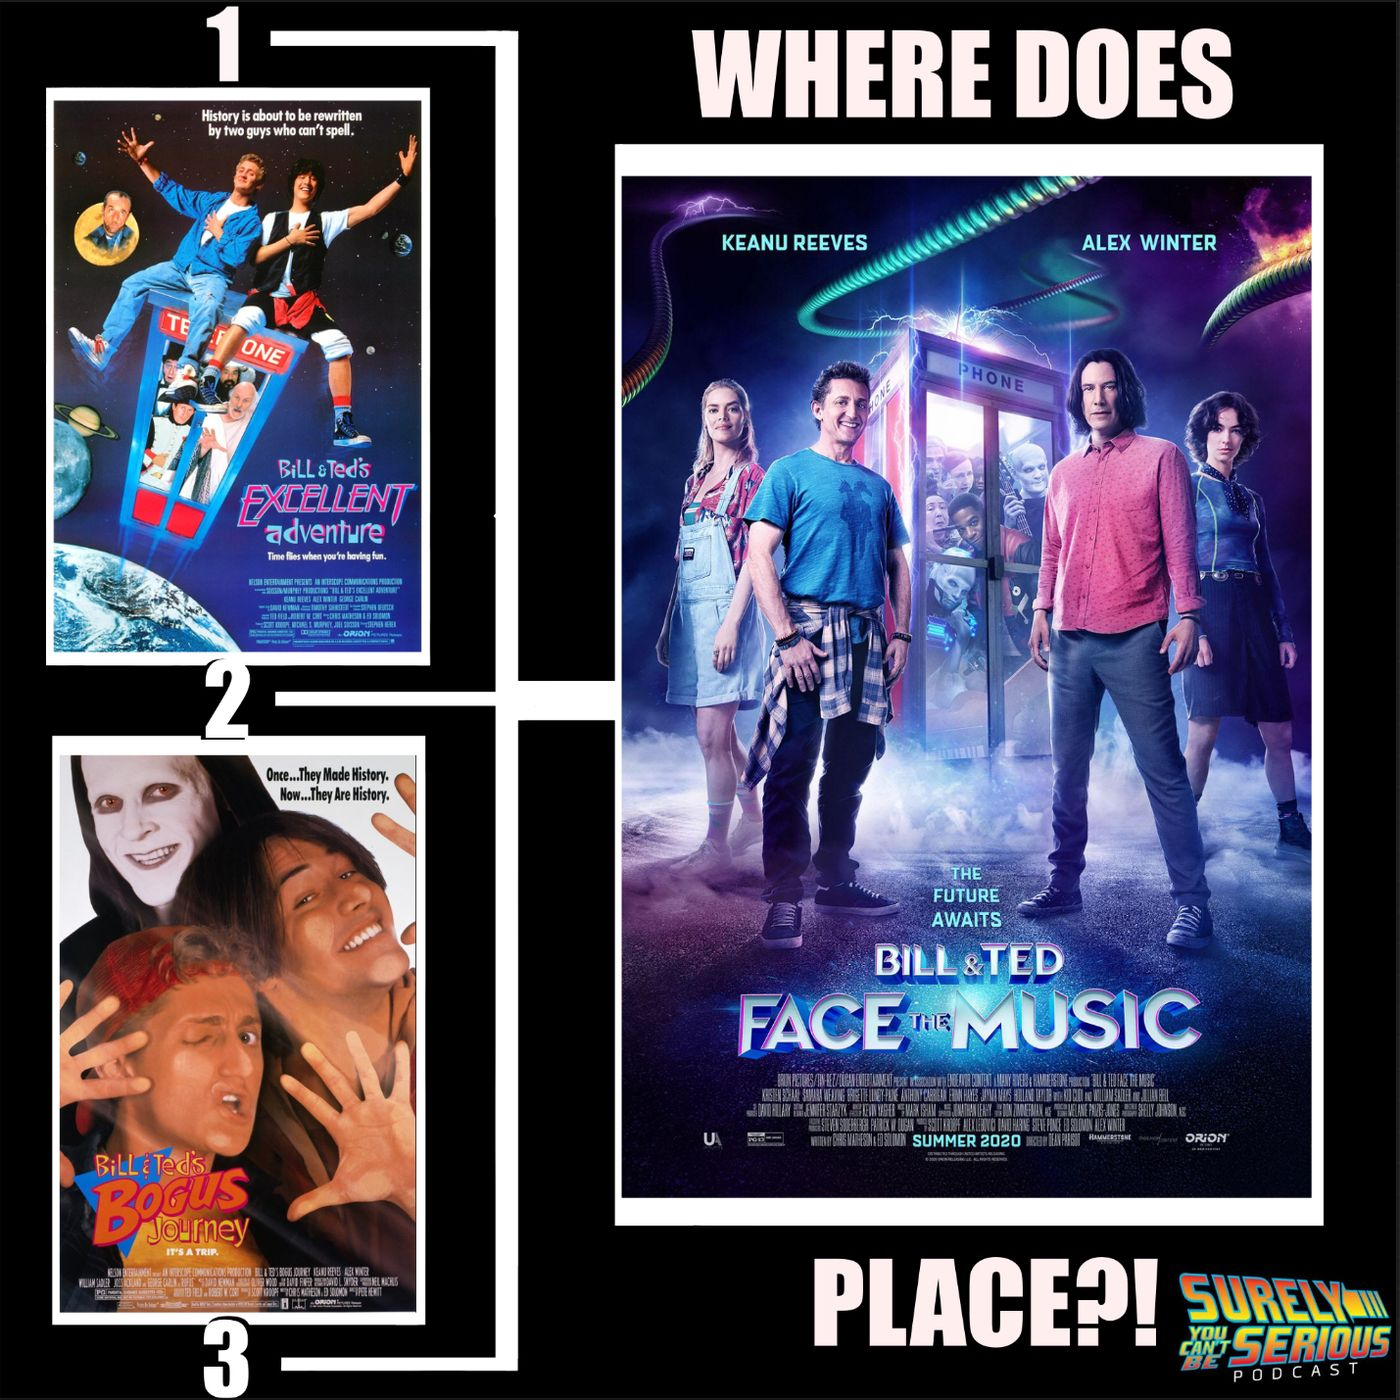 Bill and Ted Face the Music: Excellent or Bogus?